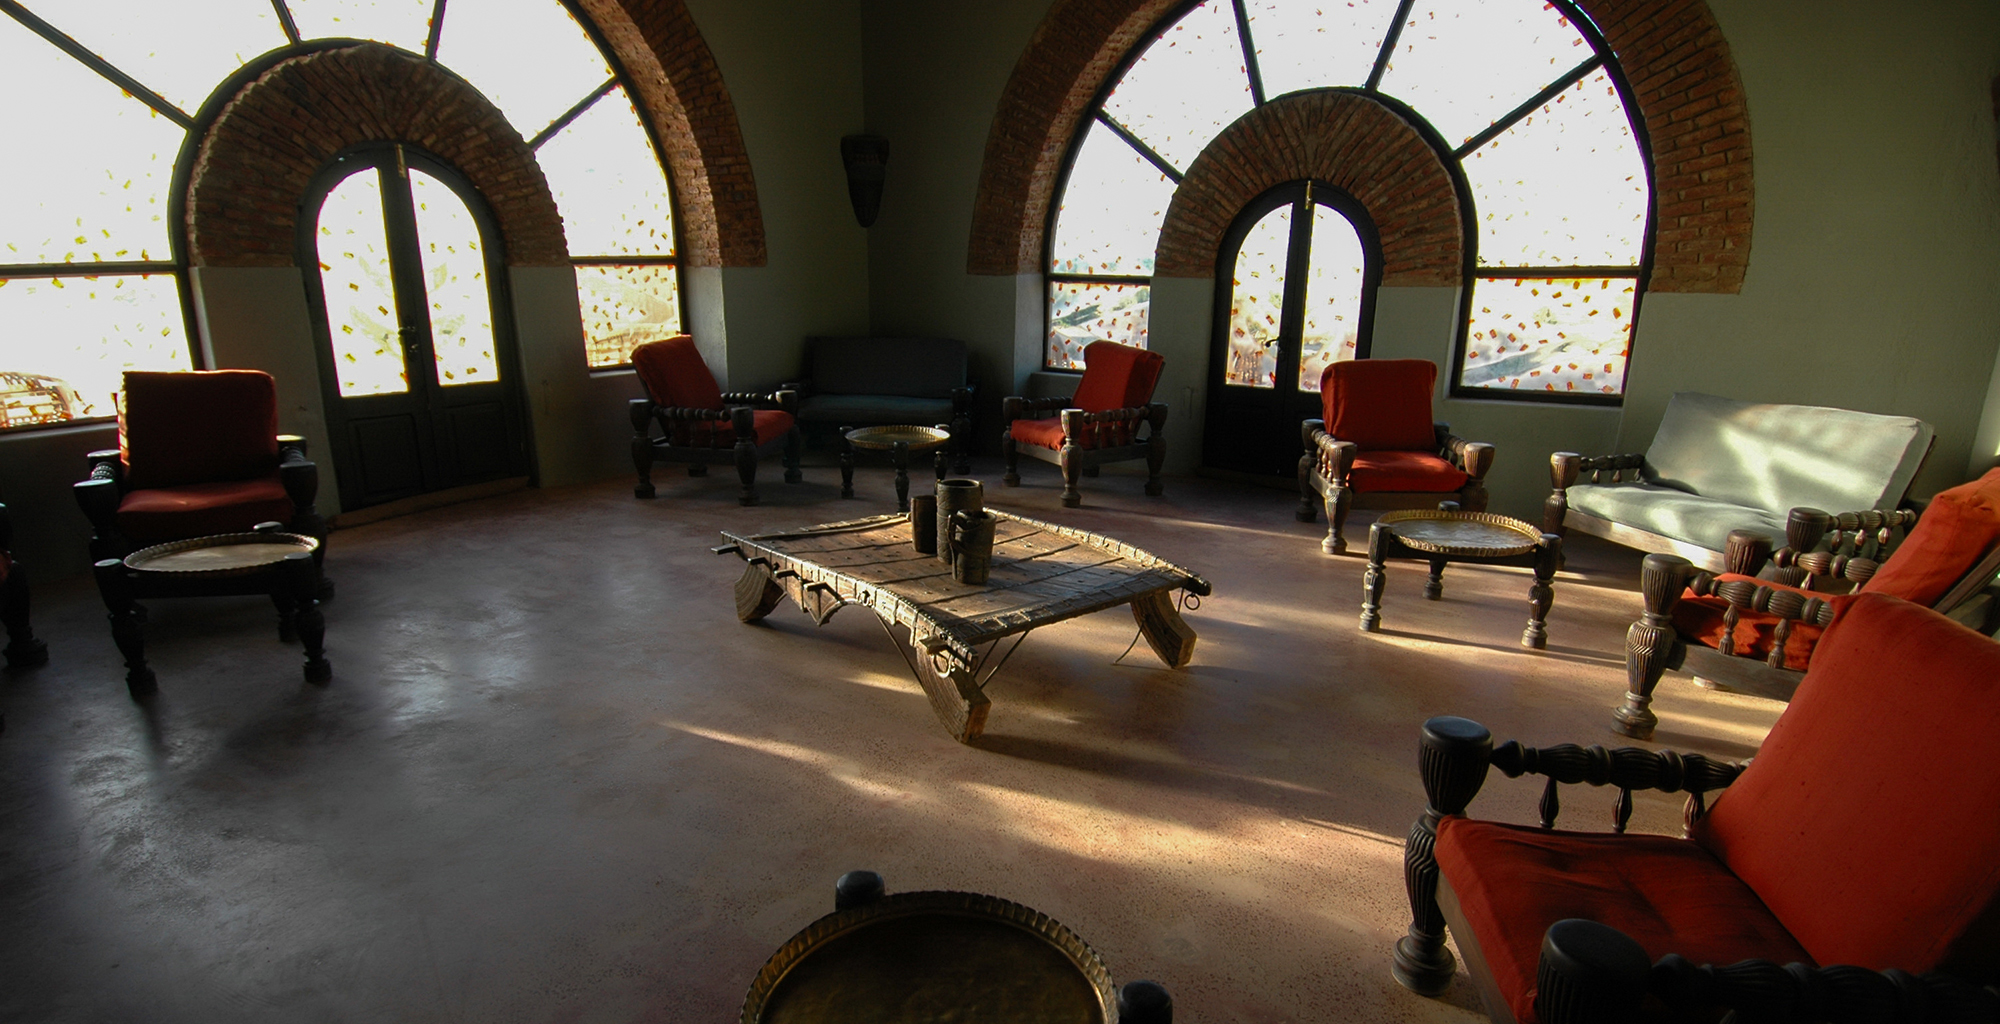 Sudan-Nubian-Rest-House-Living-Room